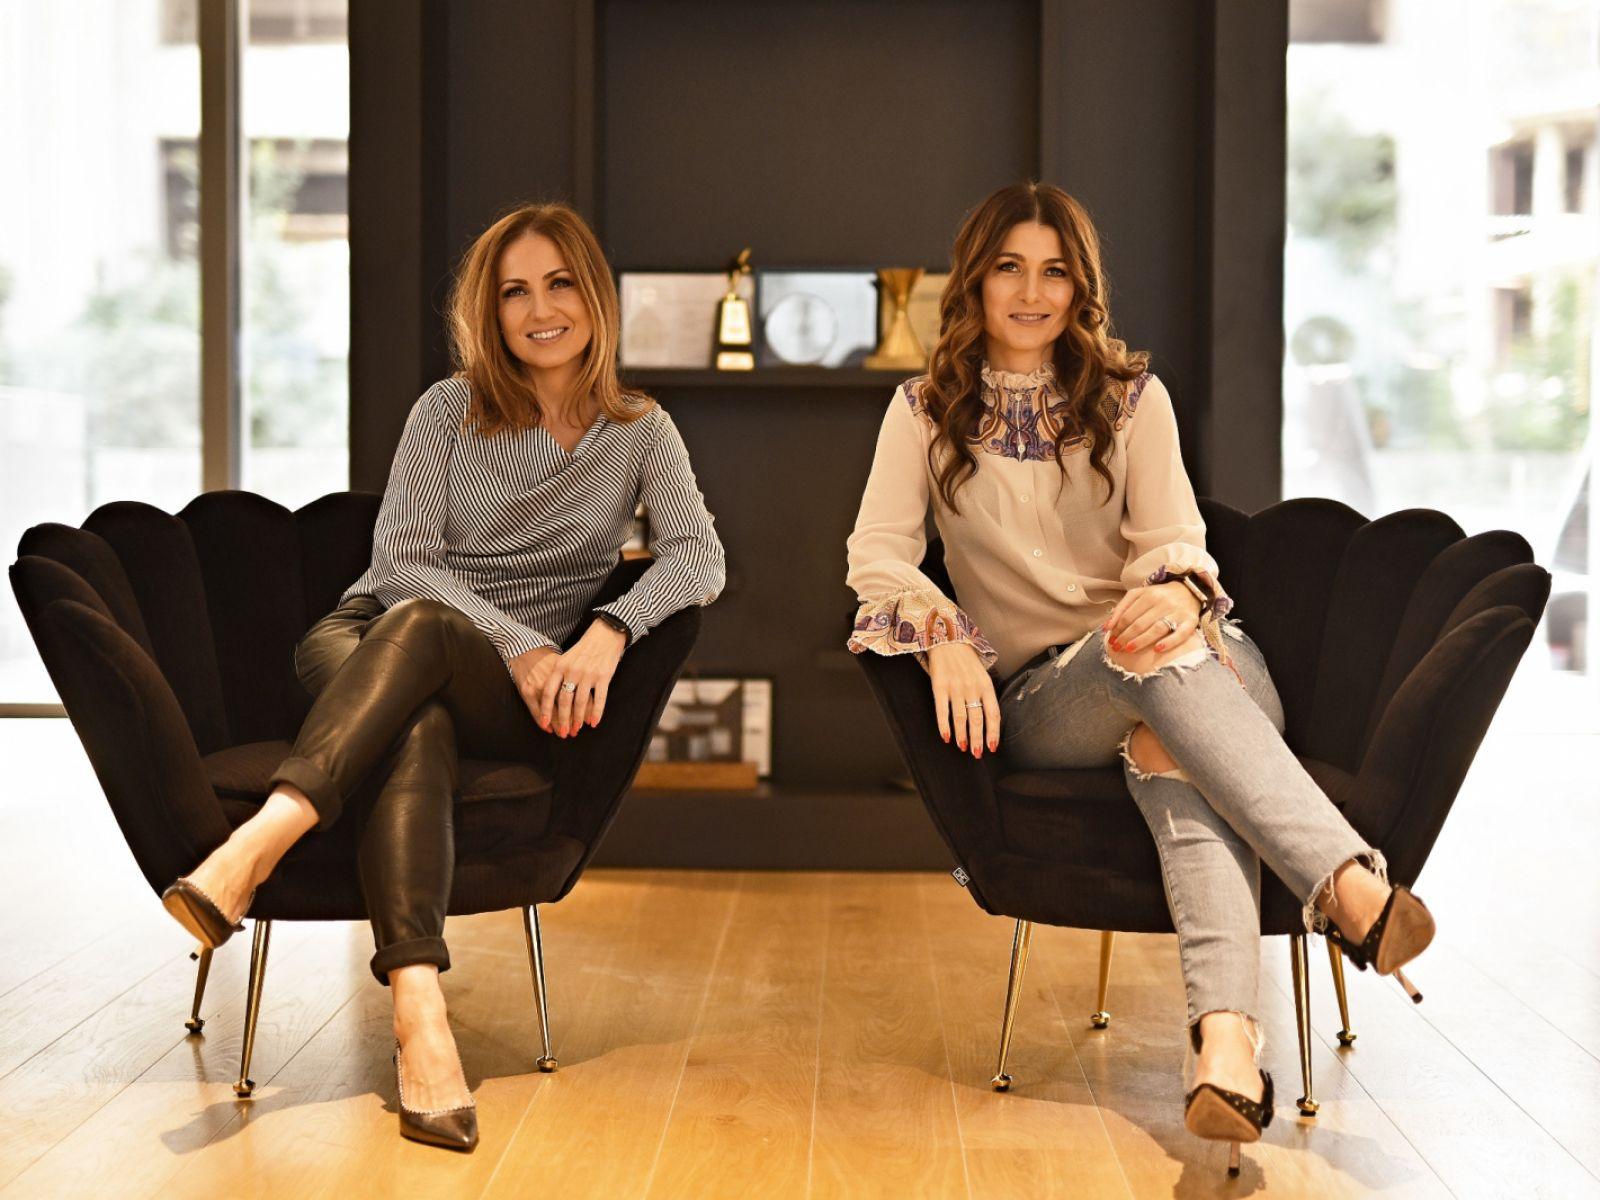 Lemon Interior Design launches Office Division, with workspaces integrated design concepts